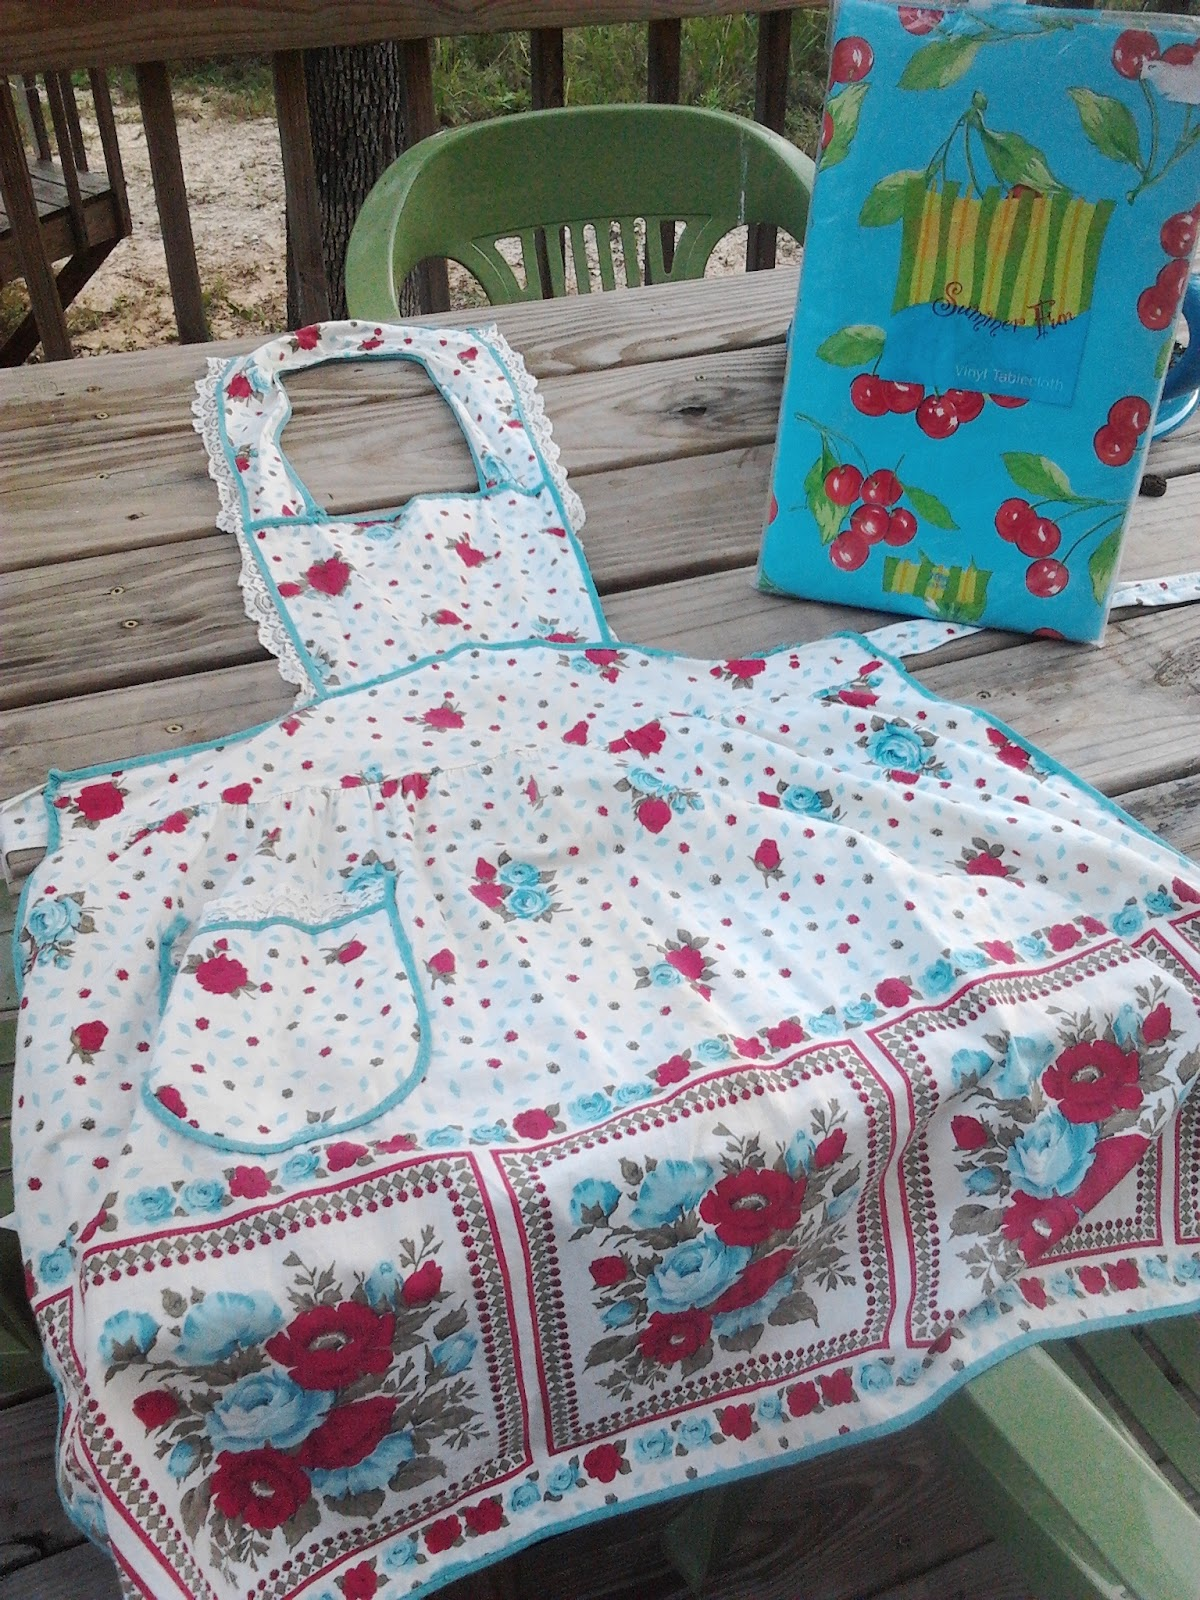 A golf cart with horns a cherry tablecloth mom and her drill a vintage apron in a cute pattern and this vinyl tablecloth with cherries only 8 i am thinking that i will use the tablecloth to cover a seat cushion jeuxipadfo Choice Image